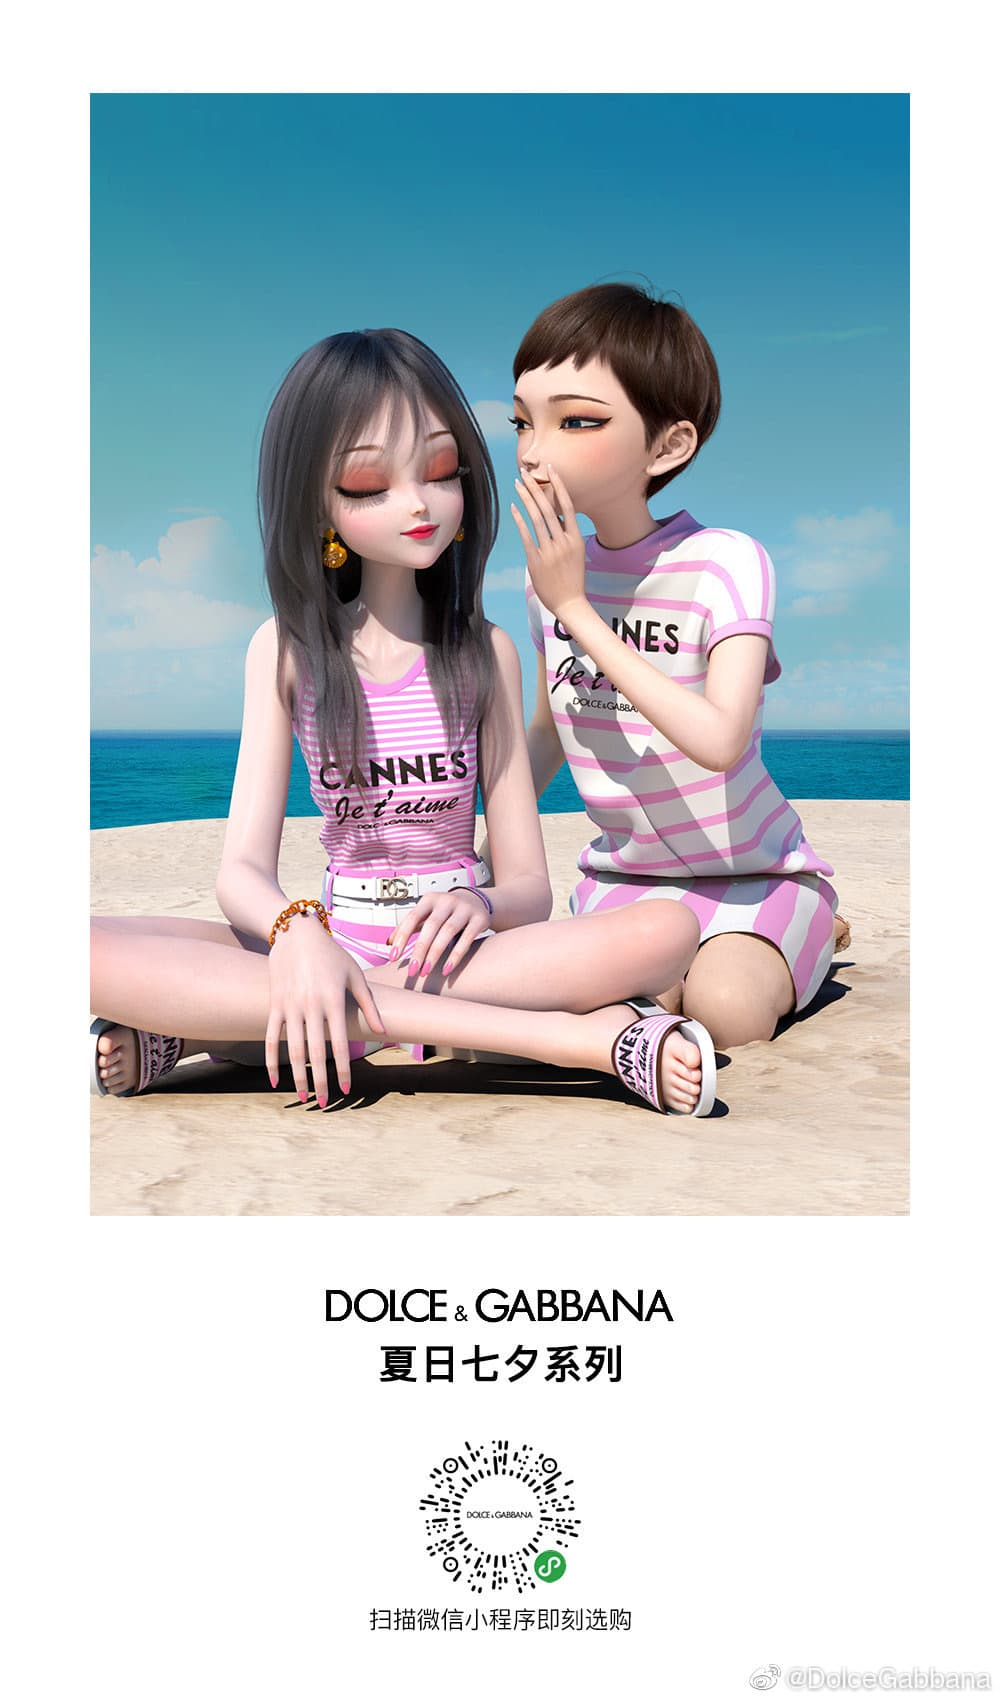 D&G China Valentines Campaign